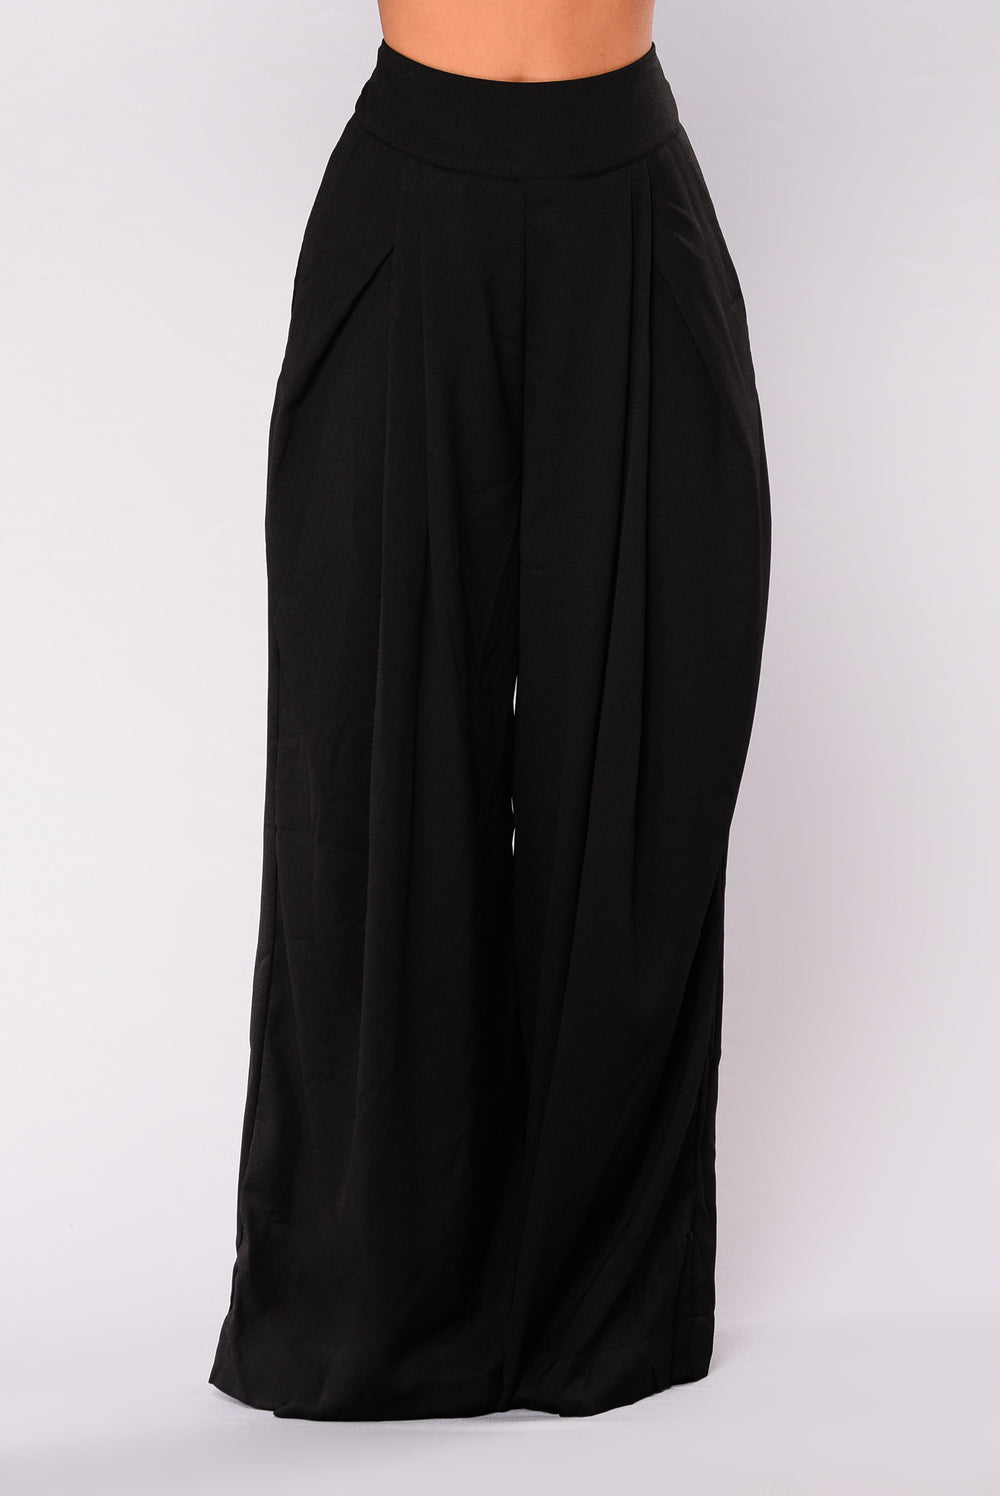 Azura Wide Leg Pant - Black